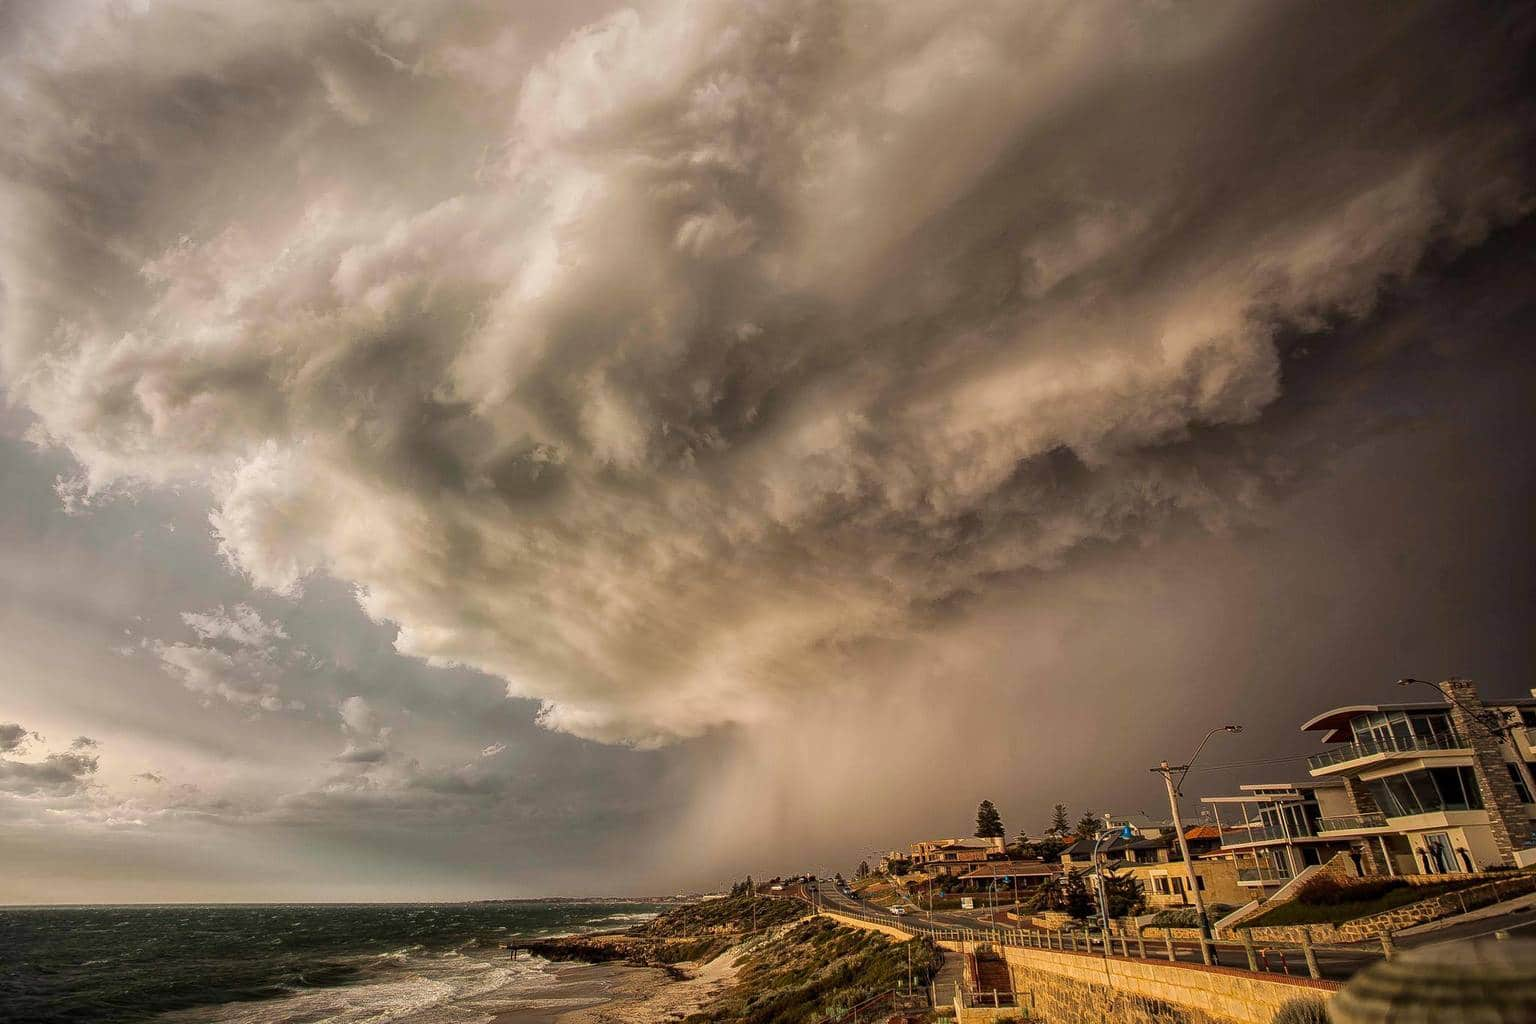 I am going to post one of my Storm Shots of a Hail Storm on November 24 2012,Location is North Beach Western Australia, this was an amazing Cell I was at a photoshoot location for a sunset shoot and this cell started twisting in the clouds and I watched it for about 2 hours and then it produced this whopper! I couldn't believe my eyes. Look forward to posting more shots some amazing photographers in this group.